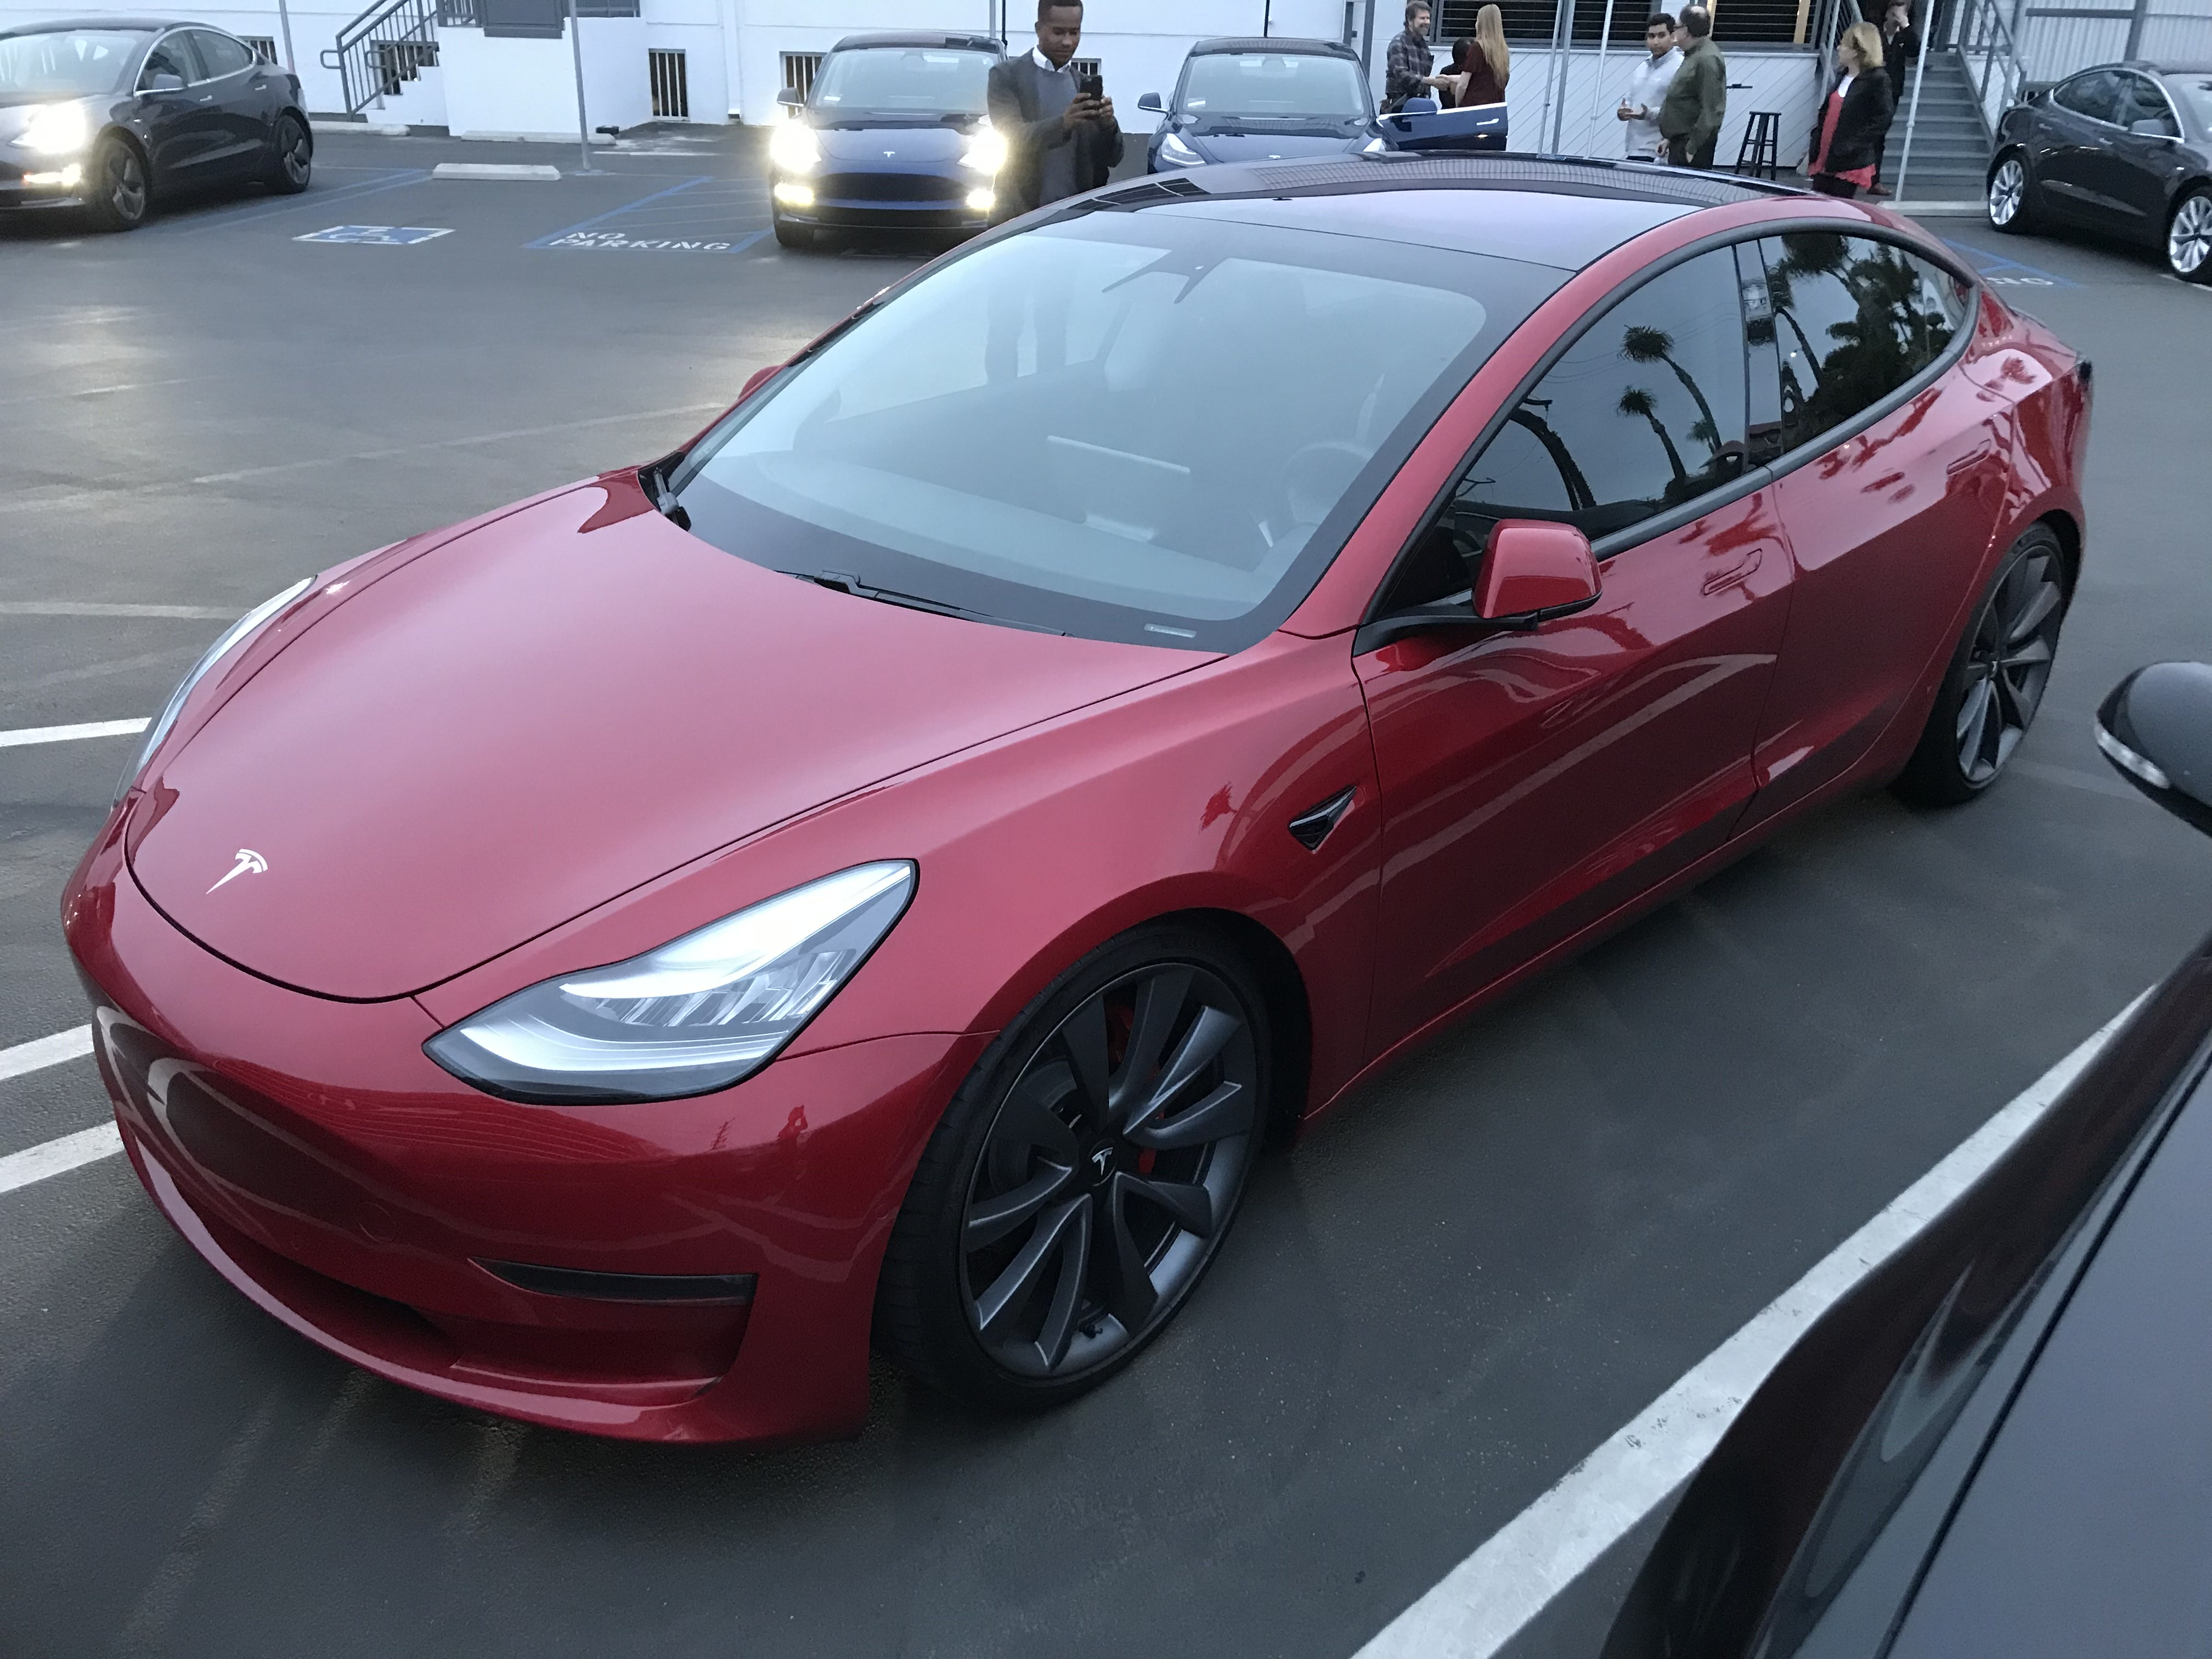 Even Tesla S Chief Designer Made A Few Modifications To His Car Which Was Spotted At Los Angeles Delivery Center Yesterday Via